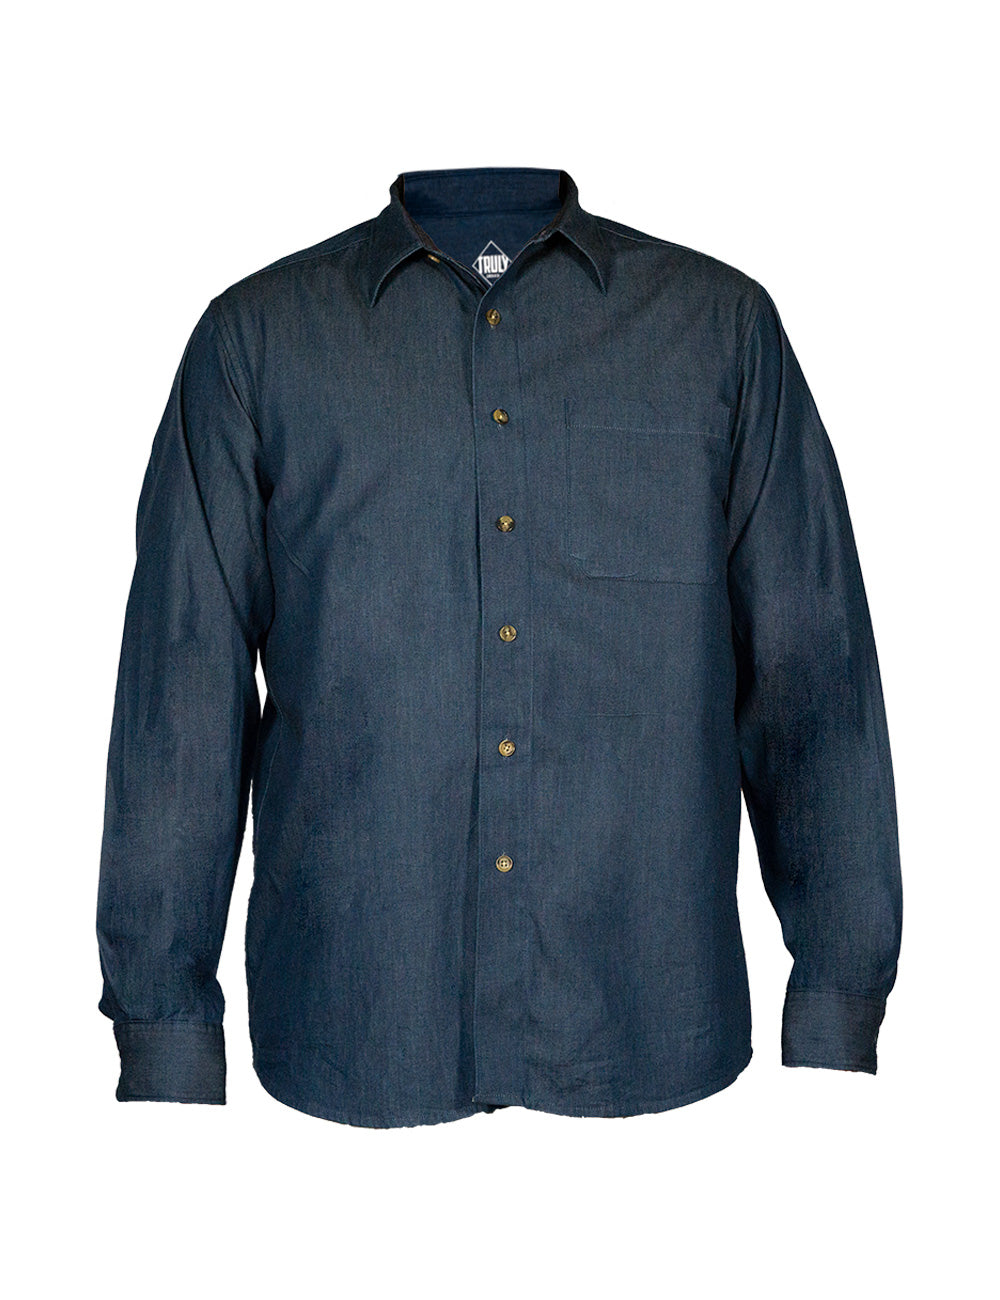 Long Sleeve Everyday Carry Shirt - Denim